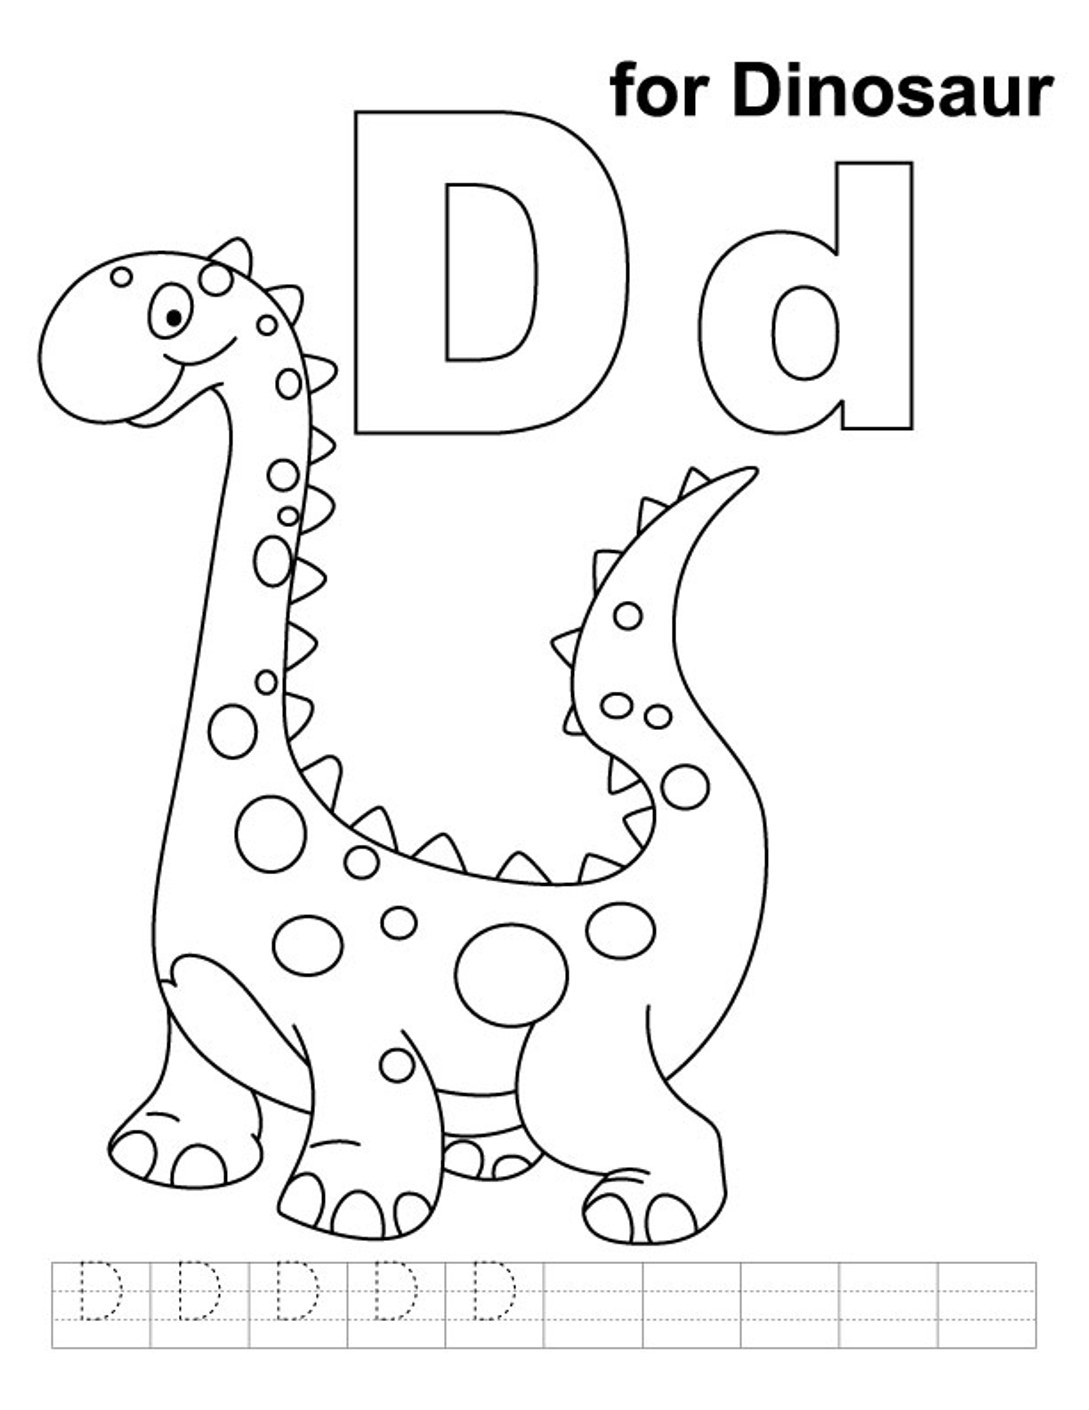 letter d coloring page for toddlers coloring pages letter d kids crafts for kids to make page toddlers d coloring letter for